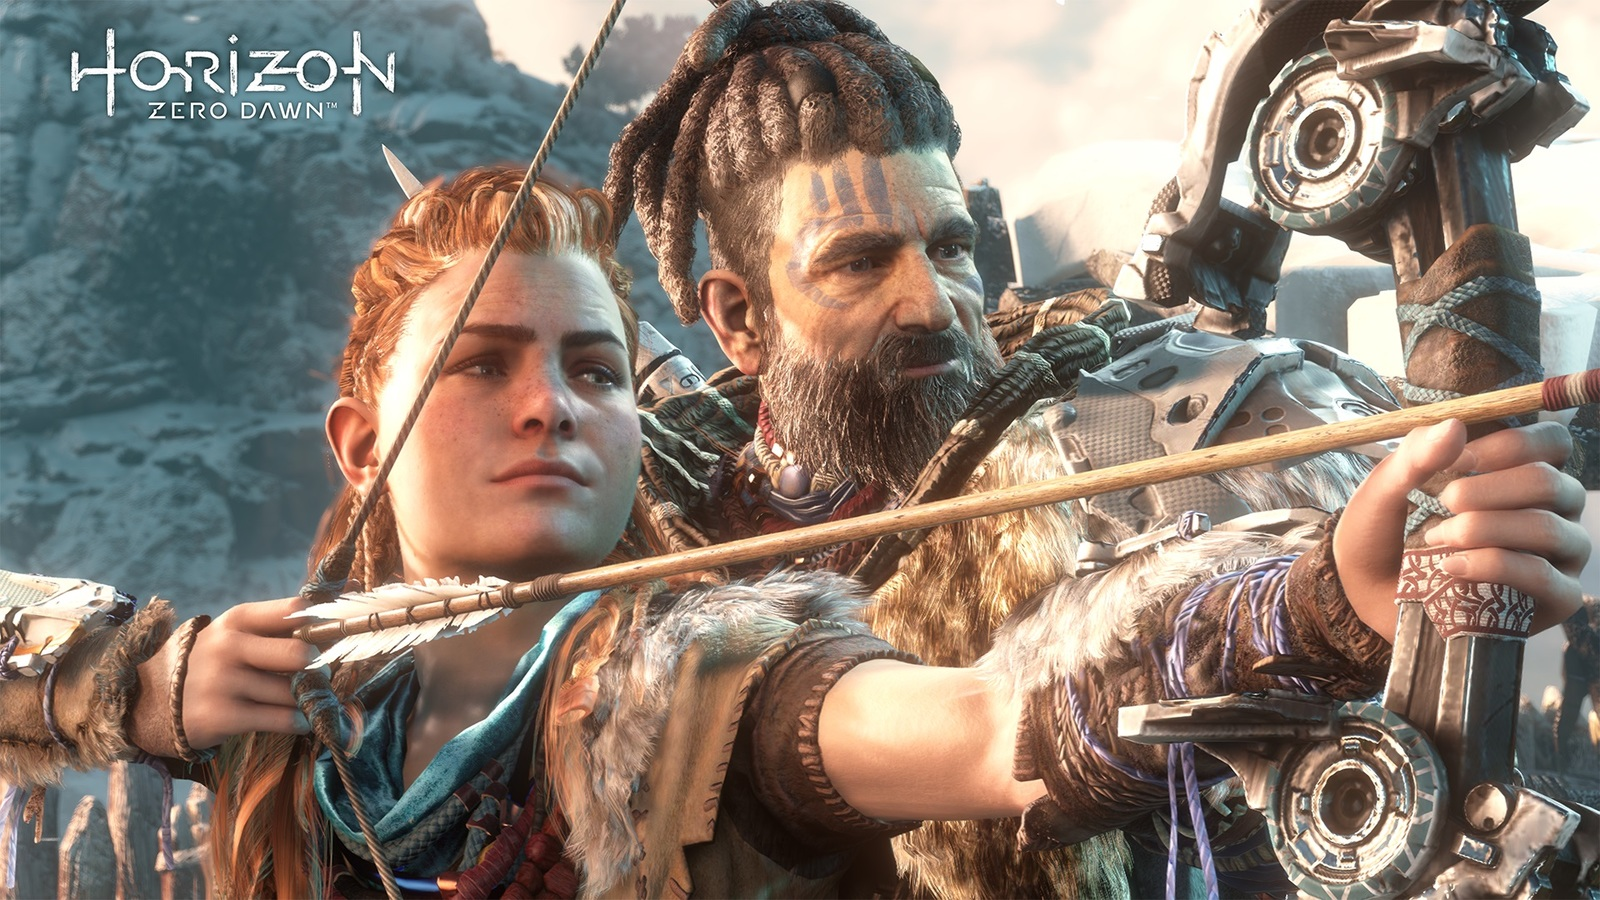 Horizon Zero Dawn Collectors Edition Ps4 Buy Now At Mighty Sony Playstation 4 Collector For